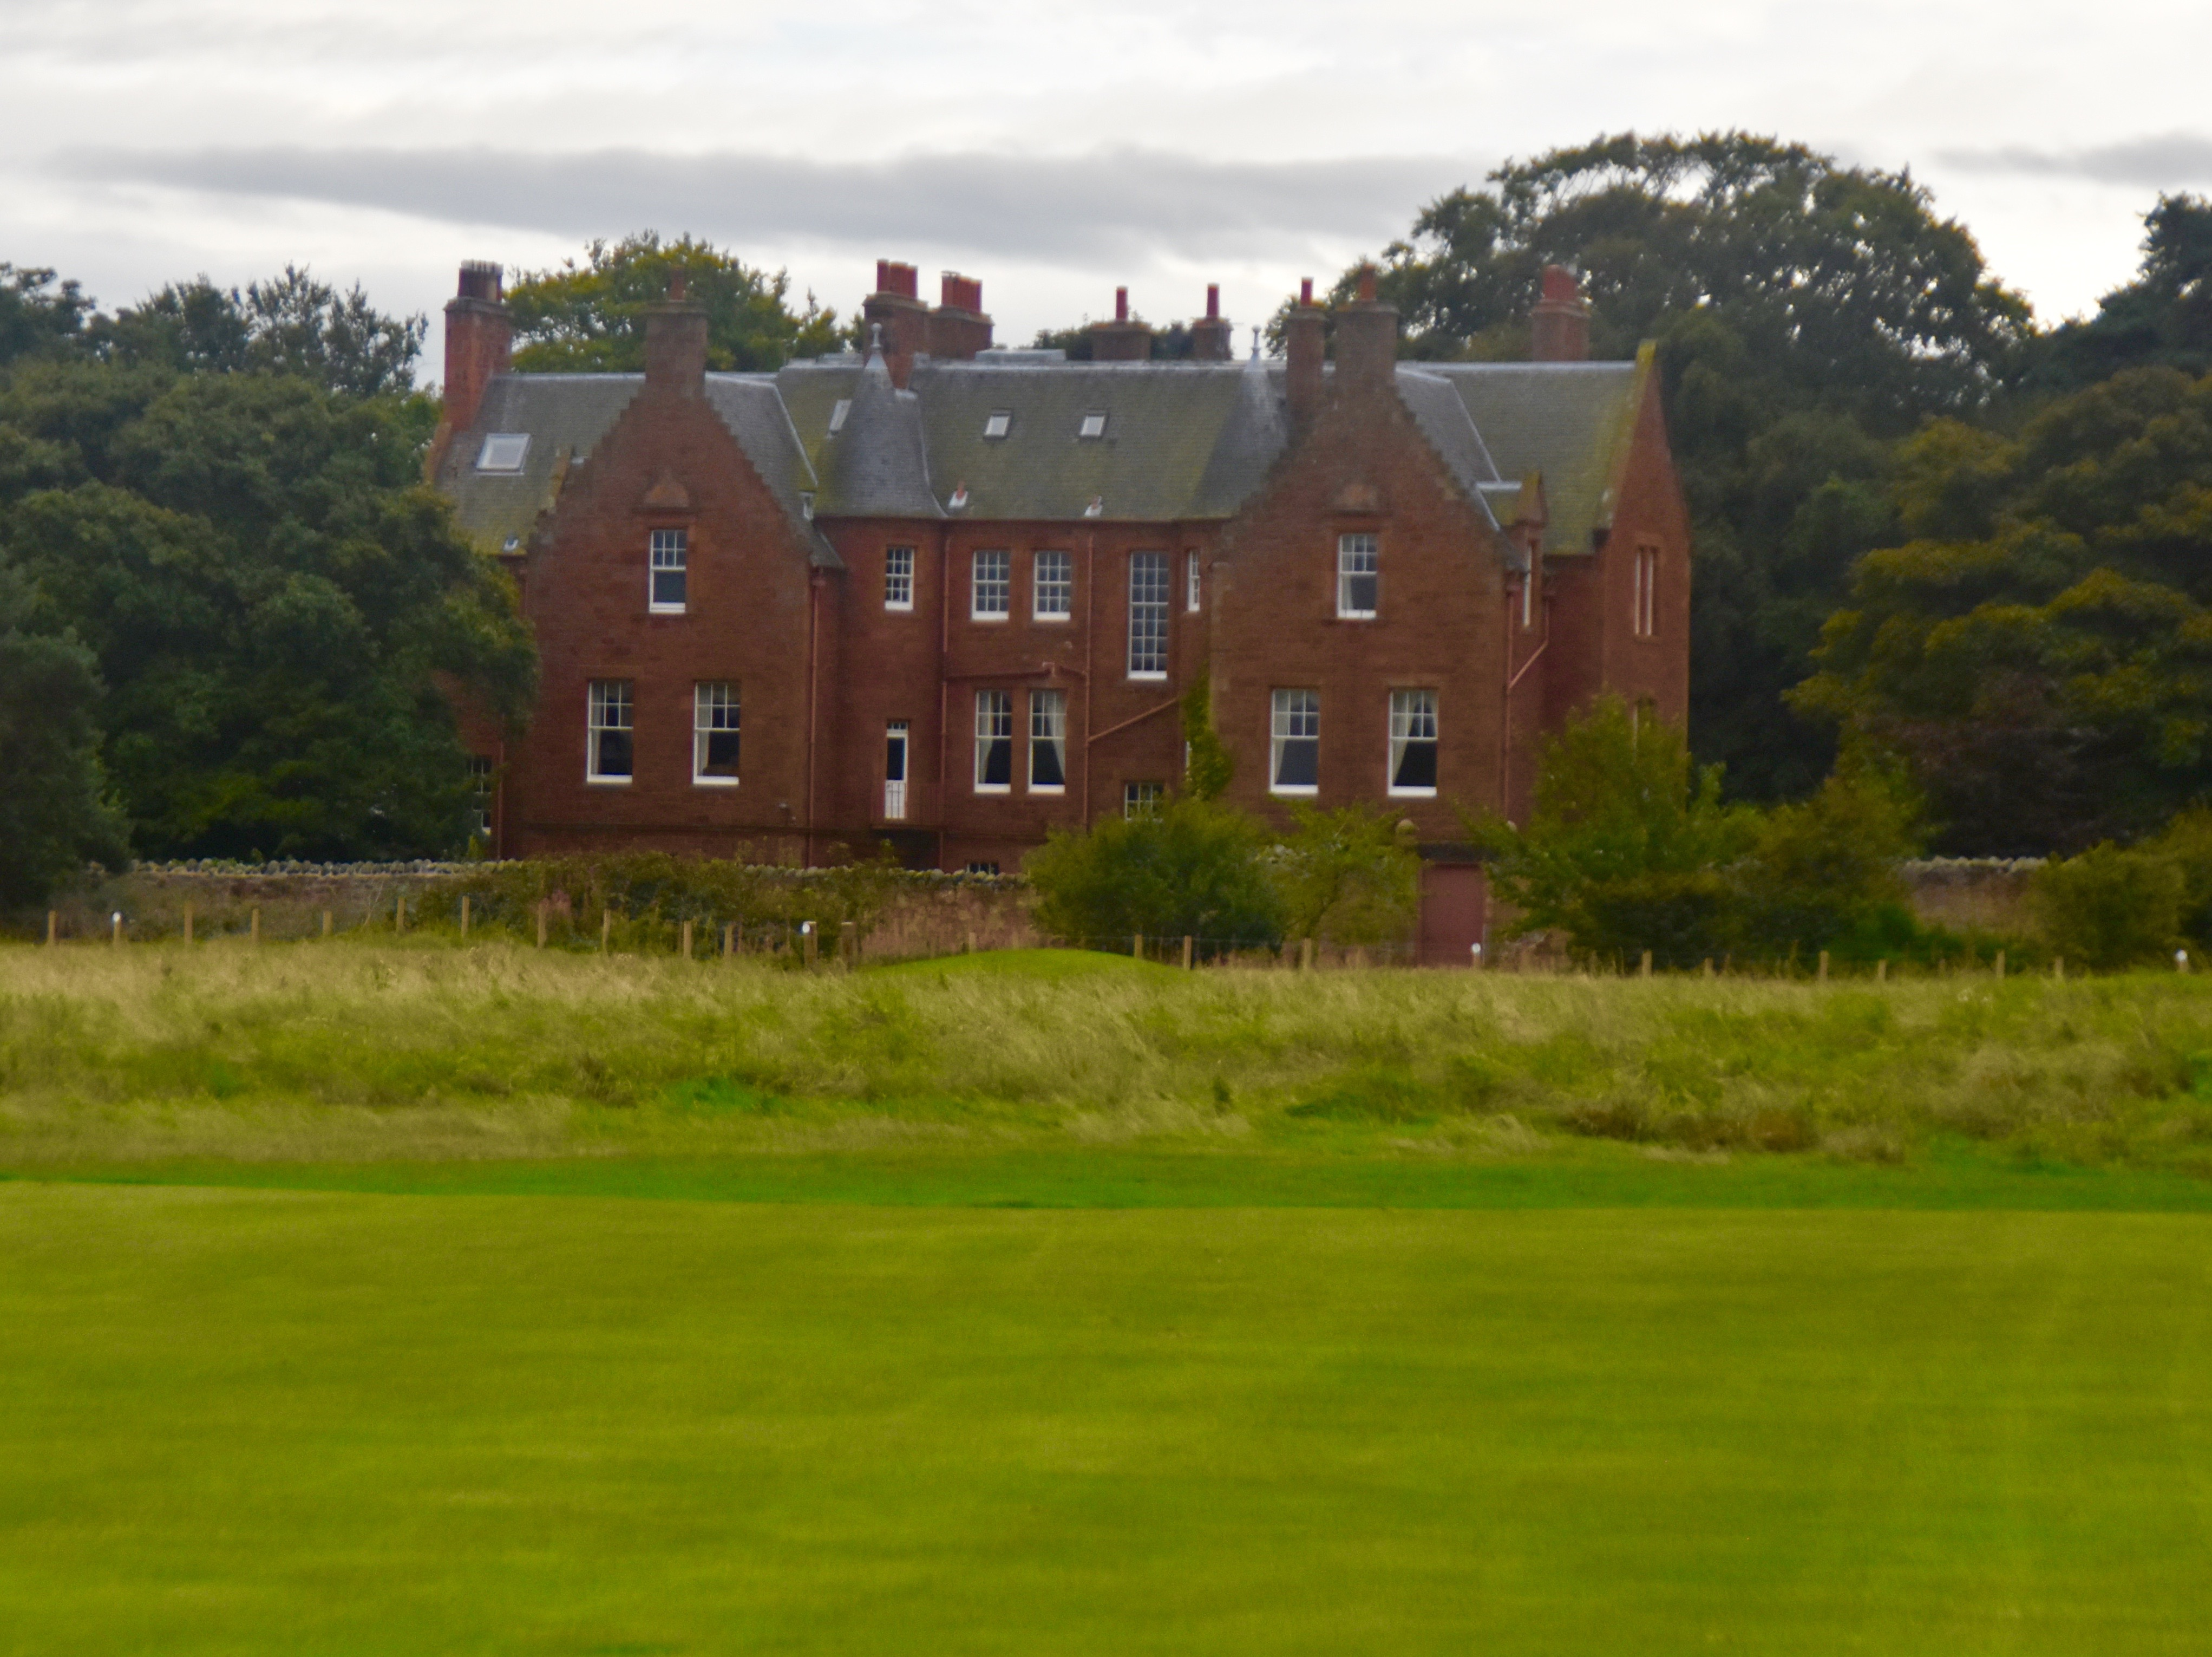 House on the course